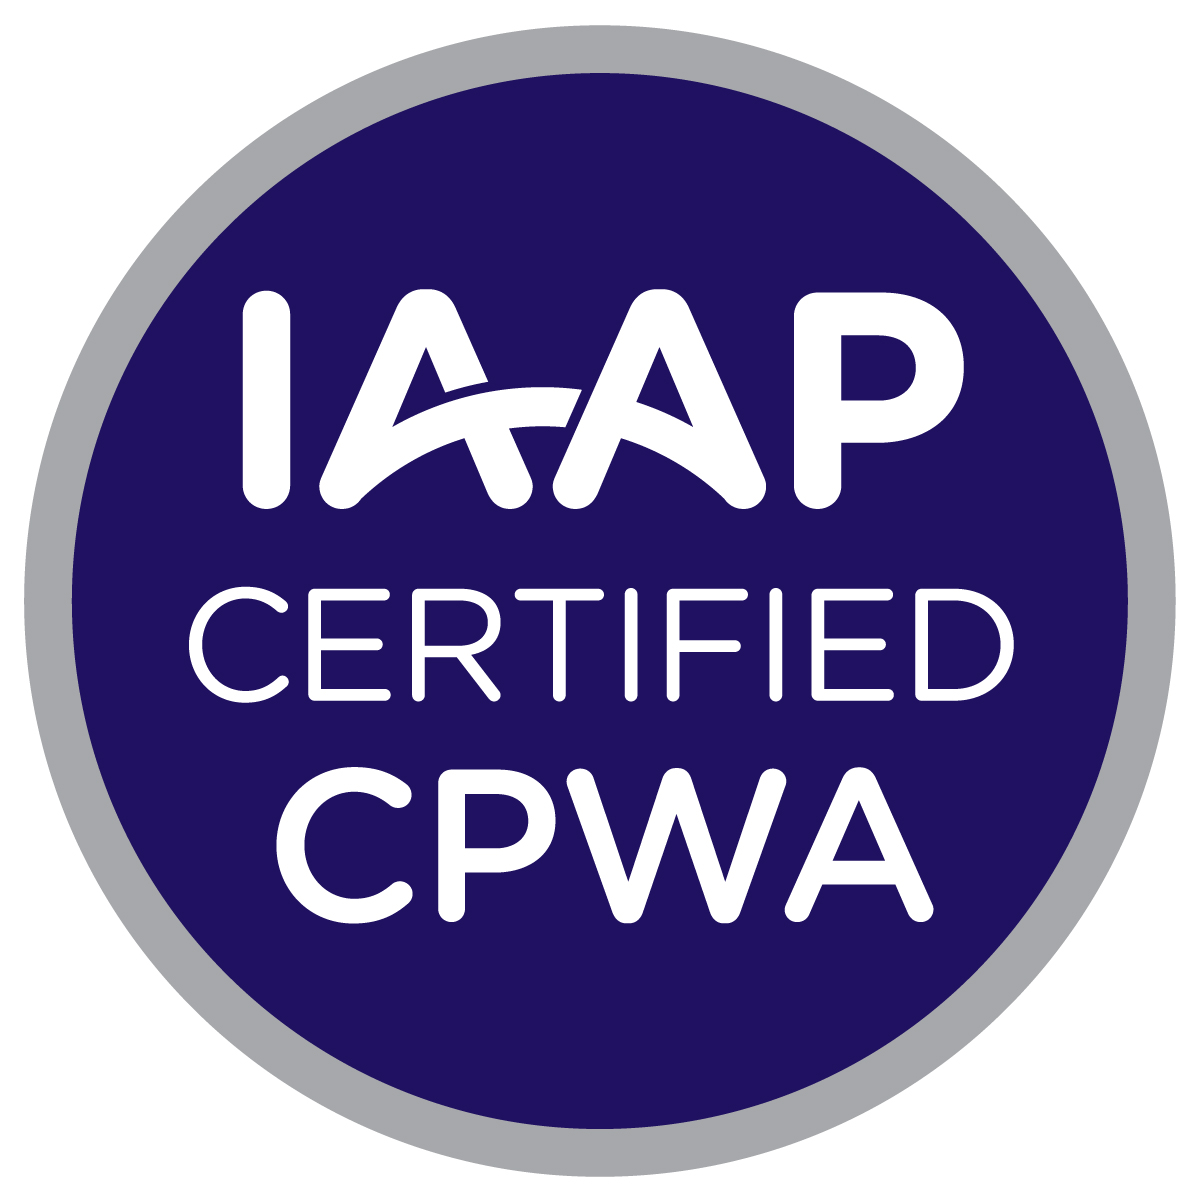 Circular badge logo for International Association of Accessibility Professionals (IAAP) Certified Professional in Web Accessibility Specialist (CPWA) credential. A dark blue circle with three lines of centered white text that read: IAAP Certified CPWA. There is a smaller silver circle that surrounds the dark blue inner circle that designates the CPWA credential color scheme.